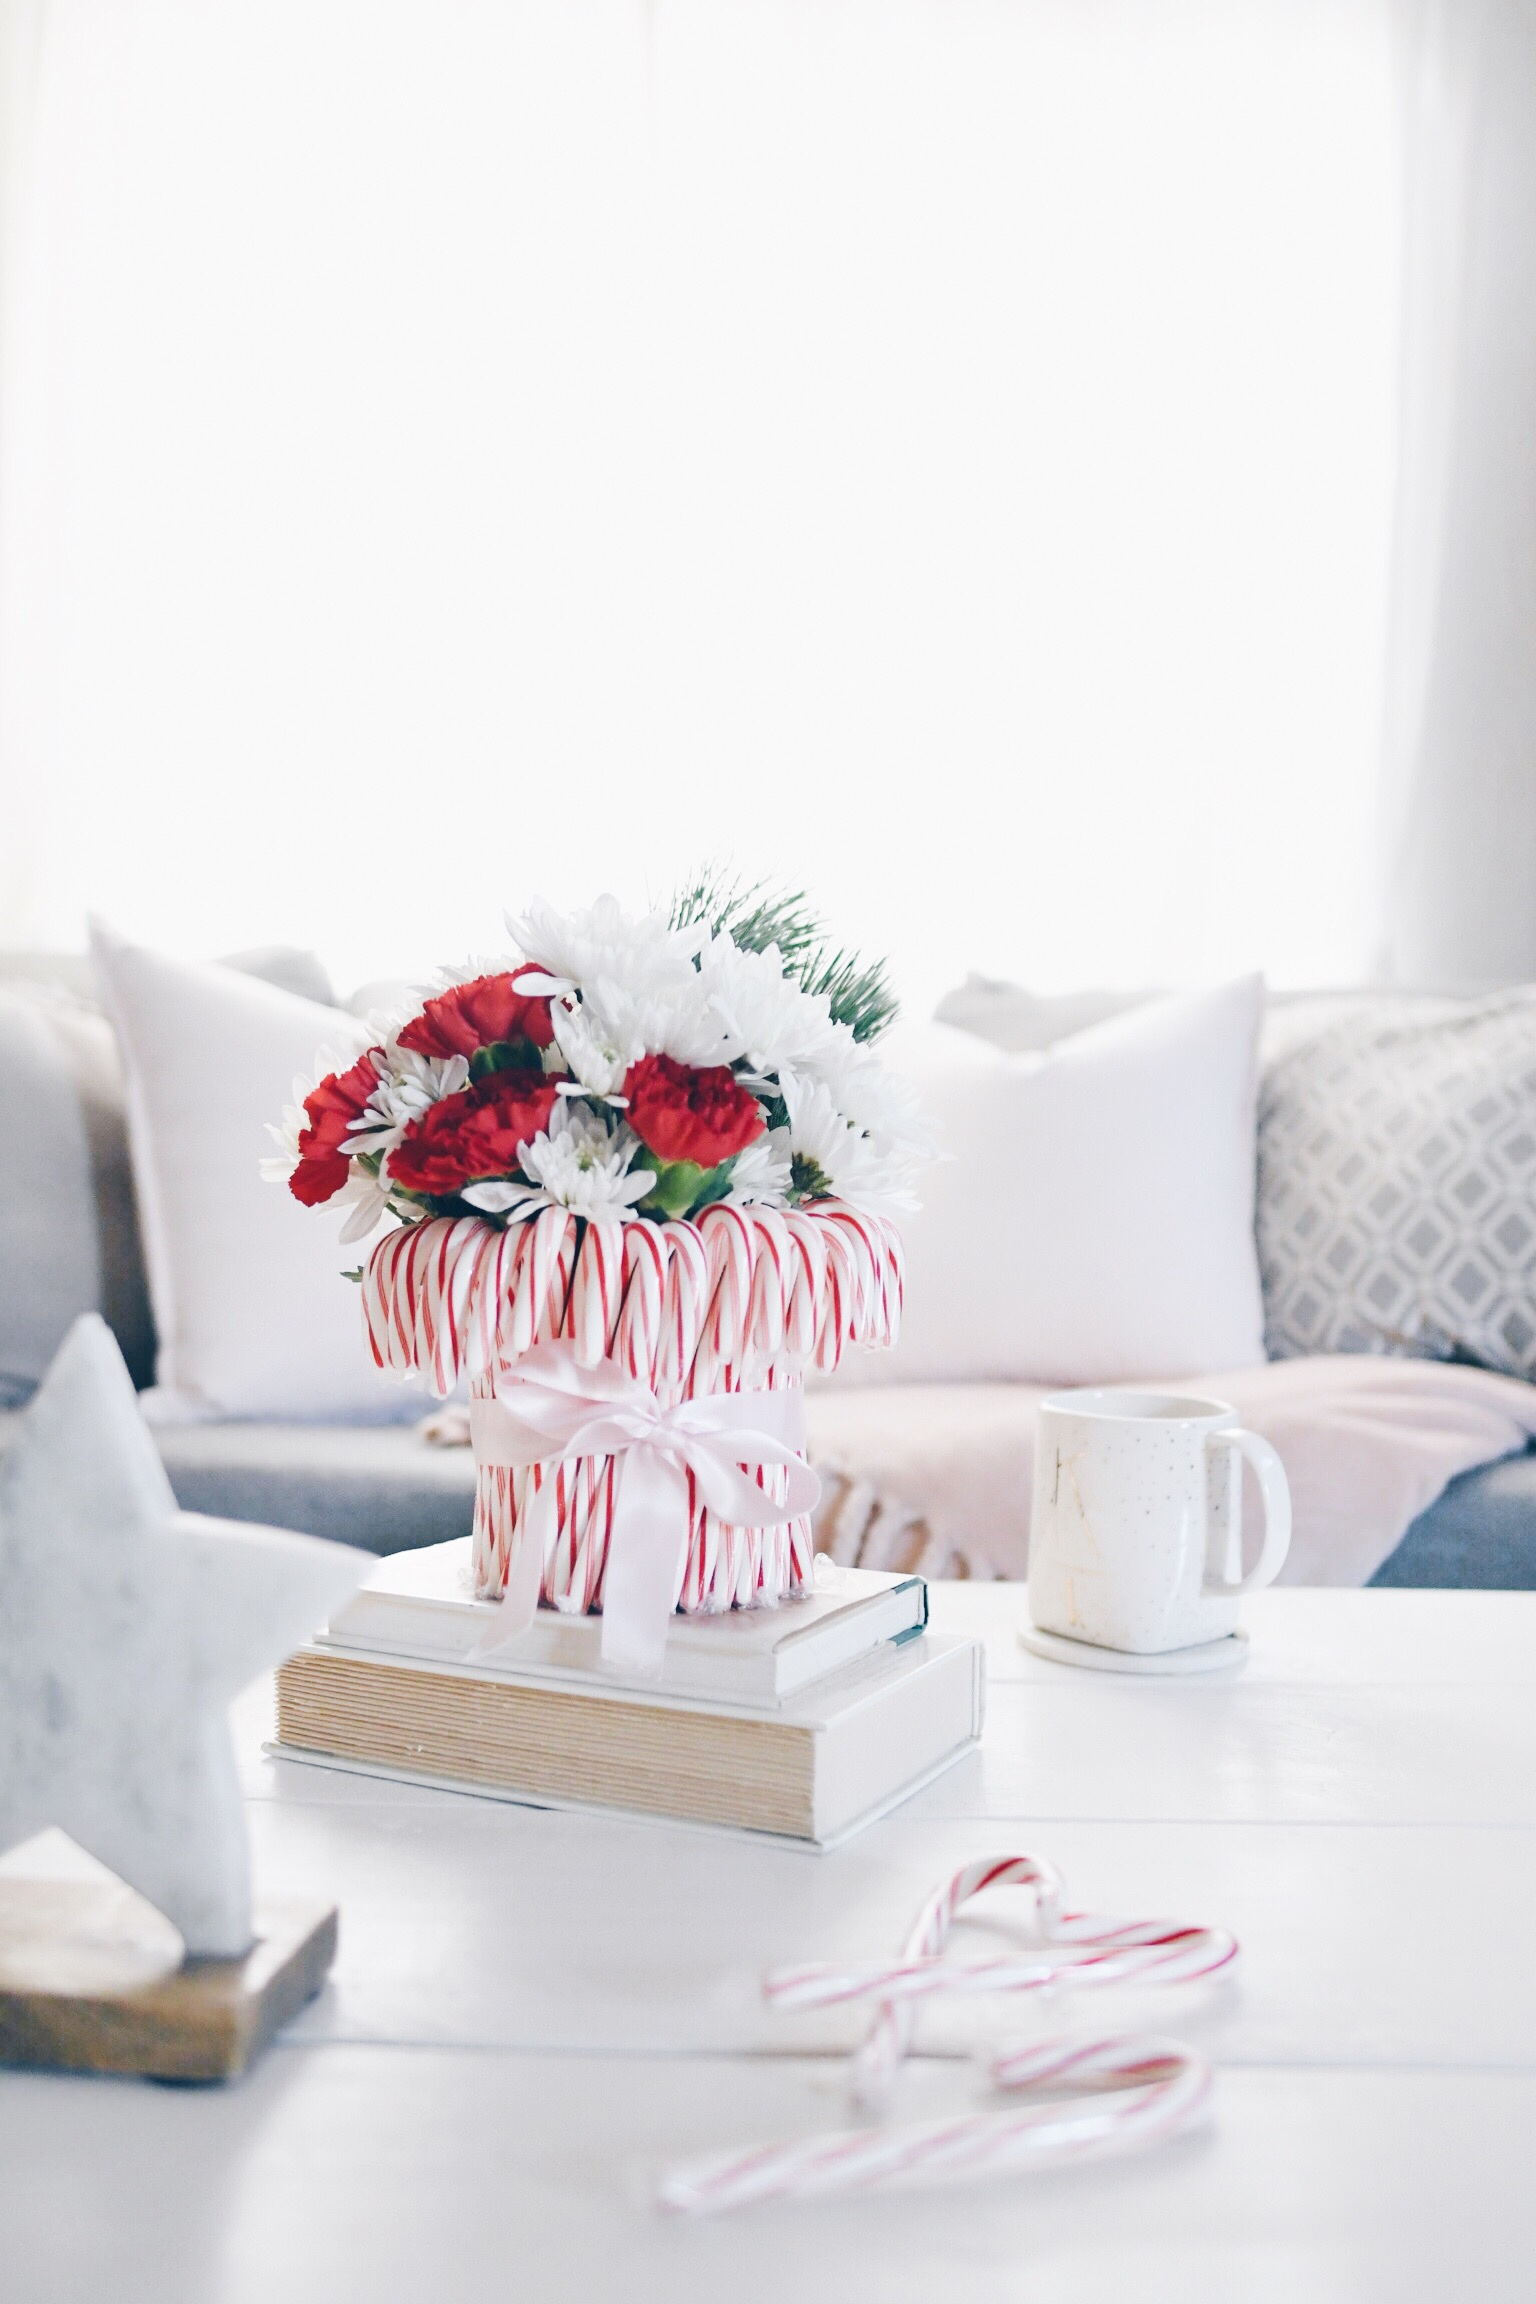 Candy Cane Holiday Floral Vase